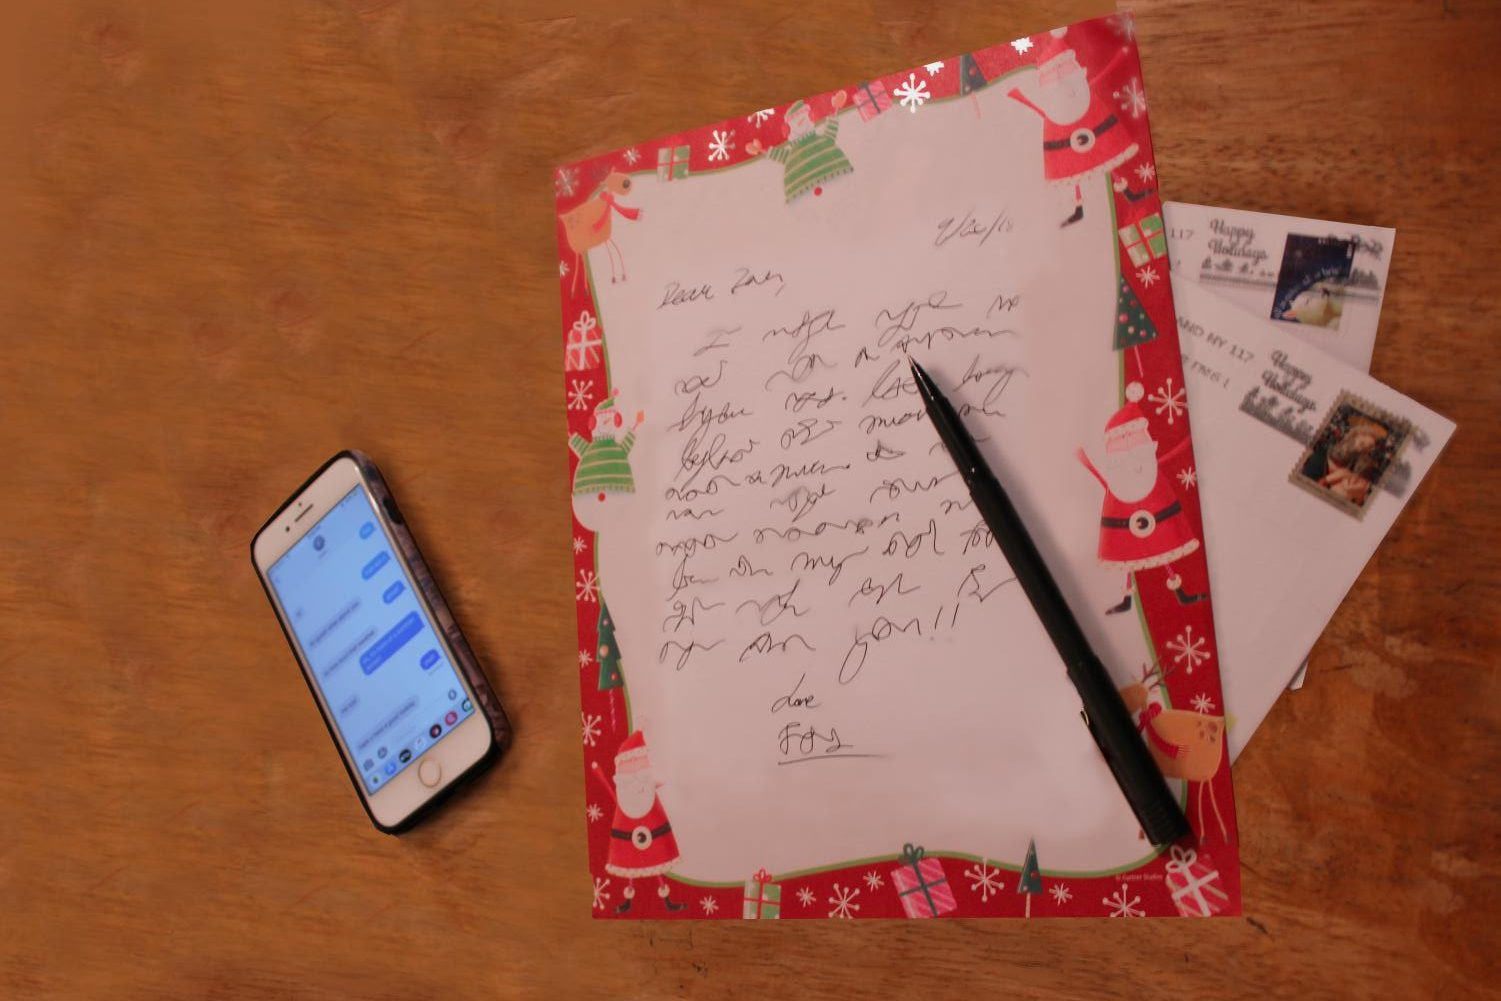 What ever happened to writing letters? Text messages have all but destroyed a long tradition of hand-written letters for all occasions.